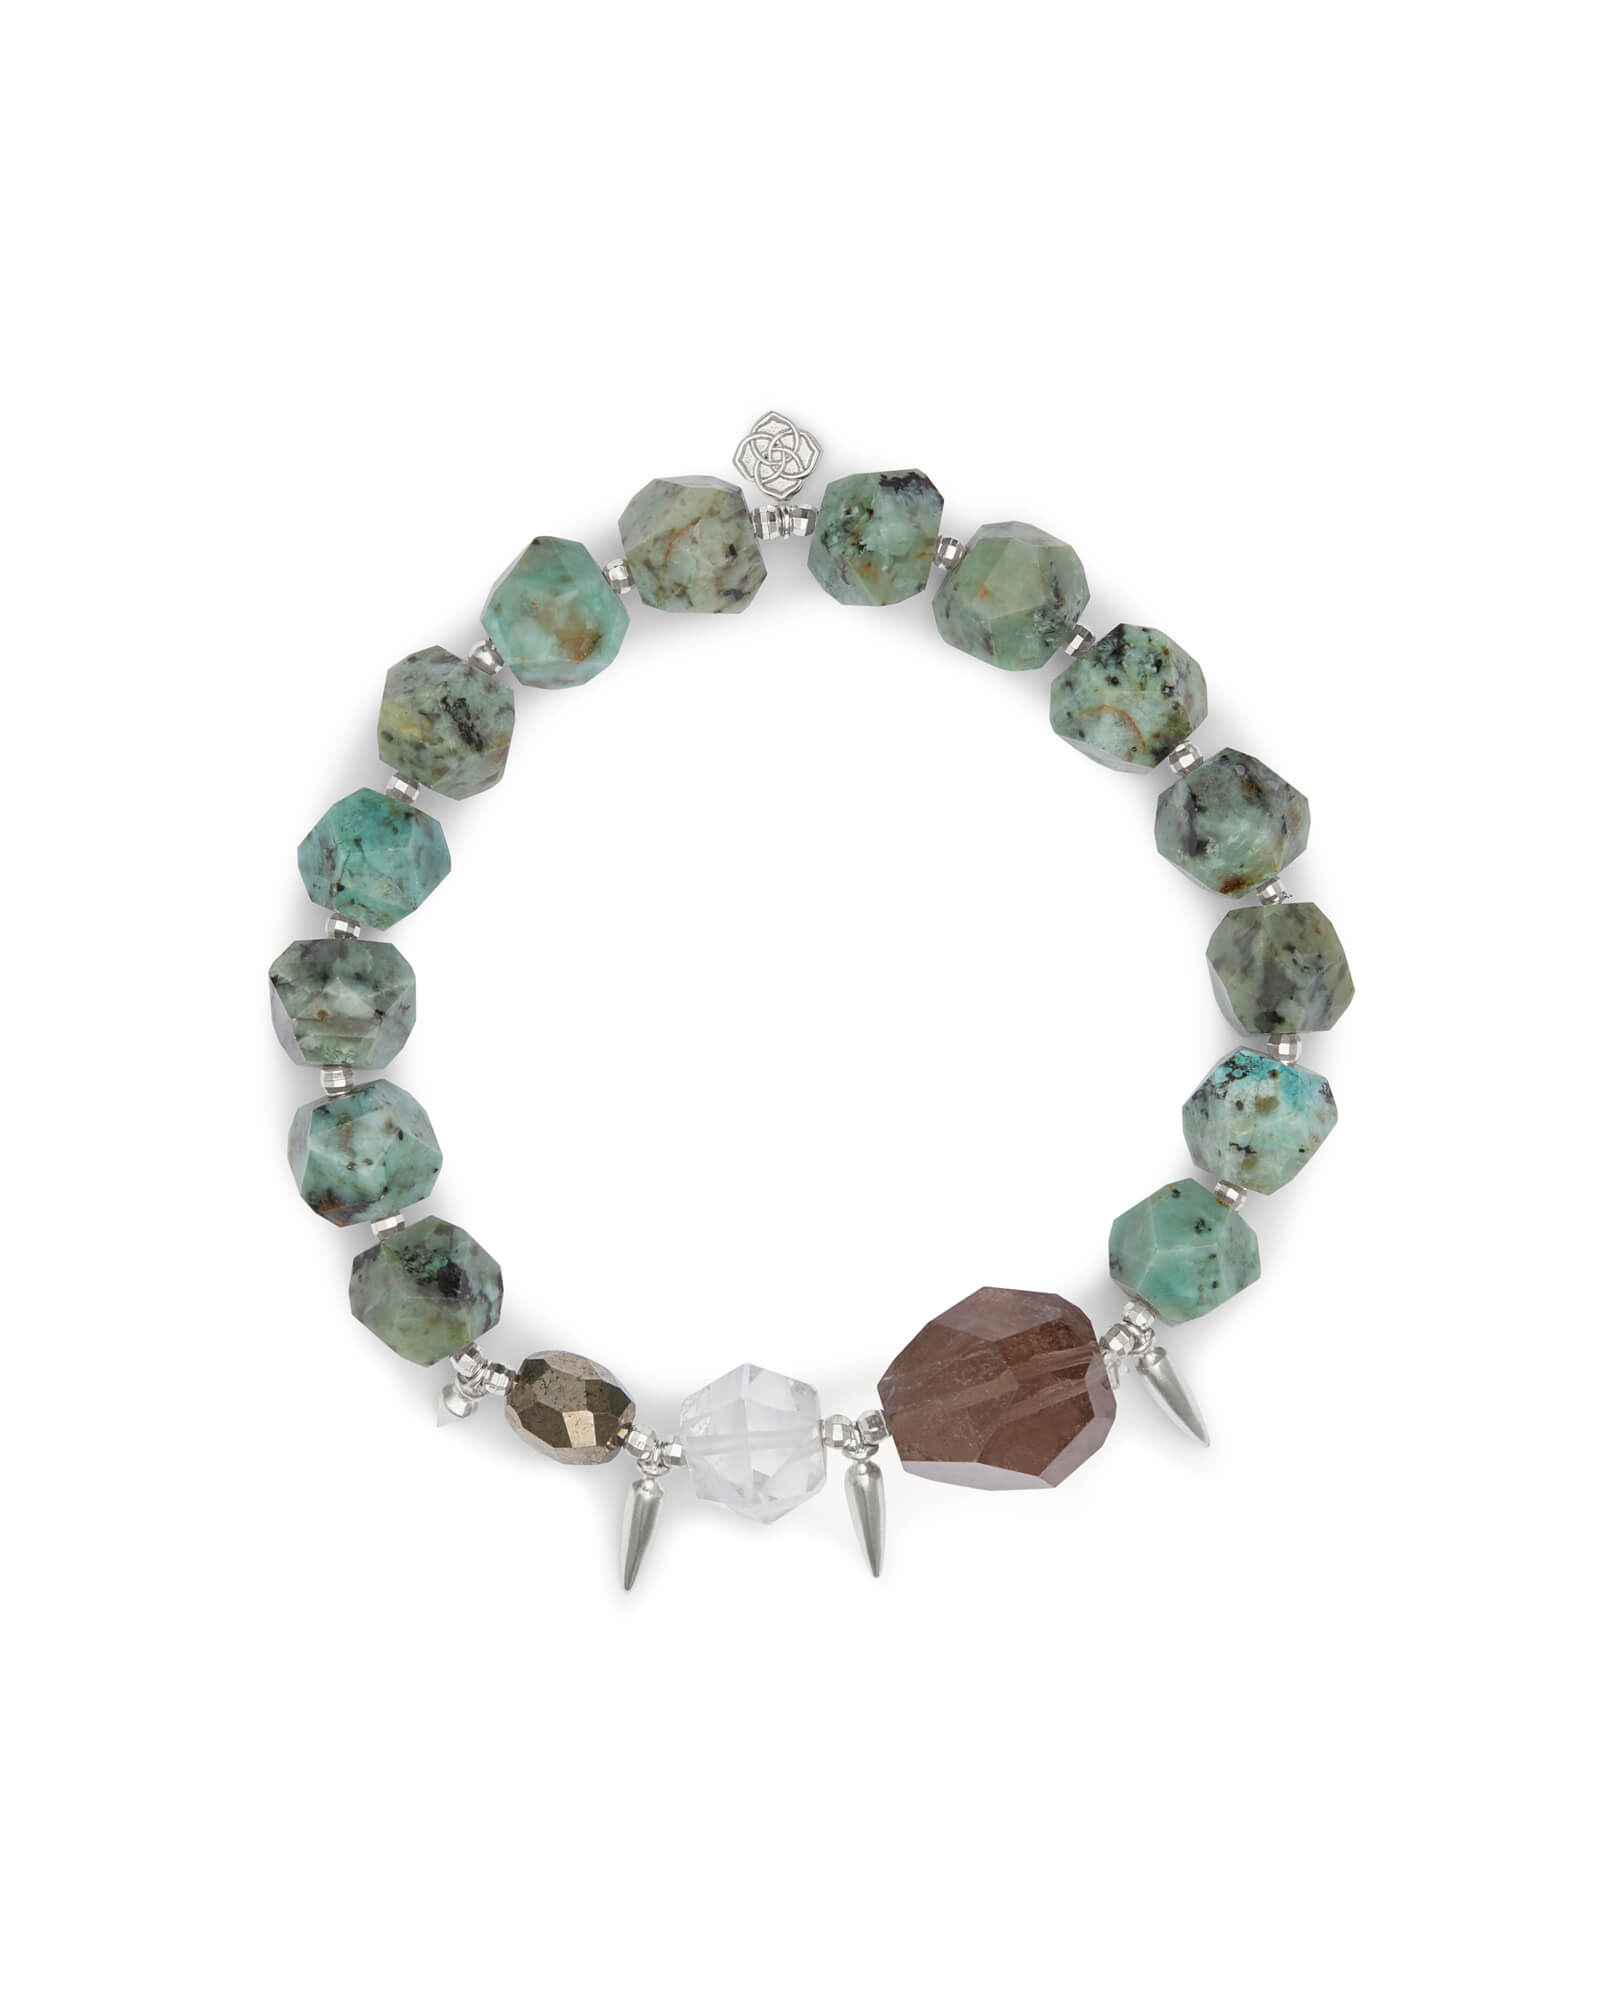 Sadie Silver Stretch Bracelet in Turquoise Mix